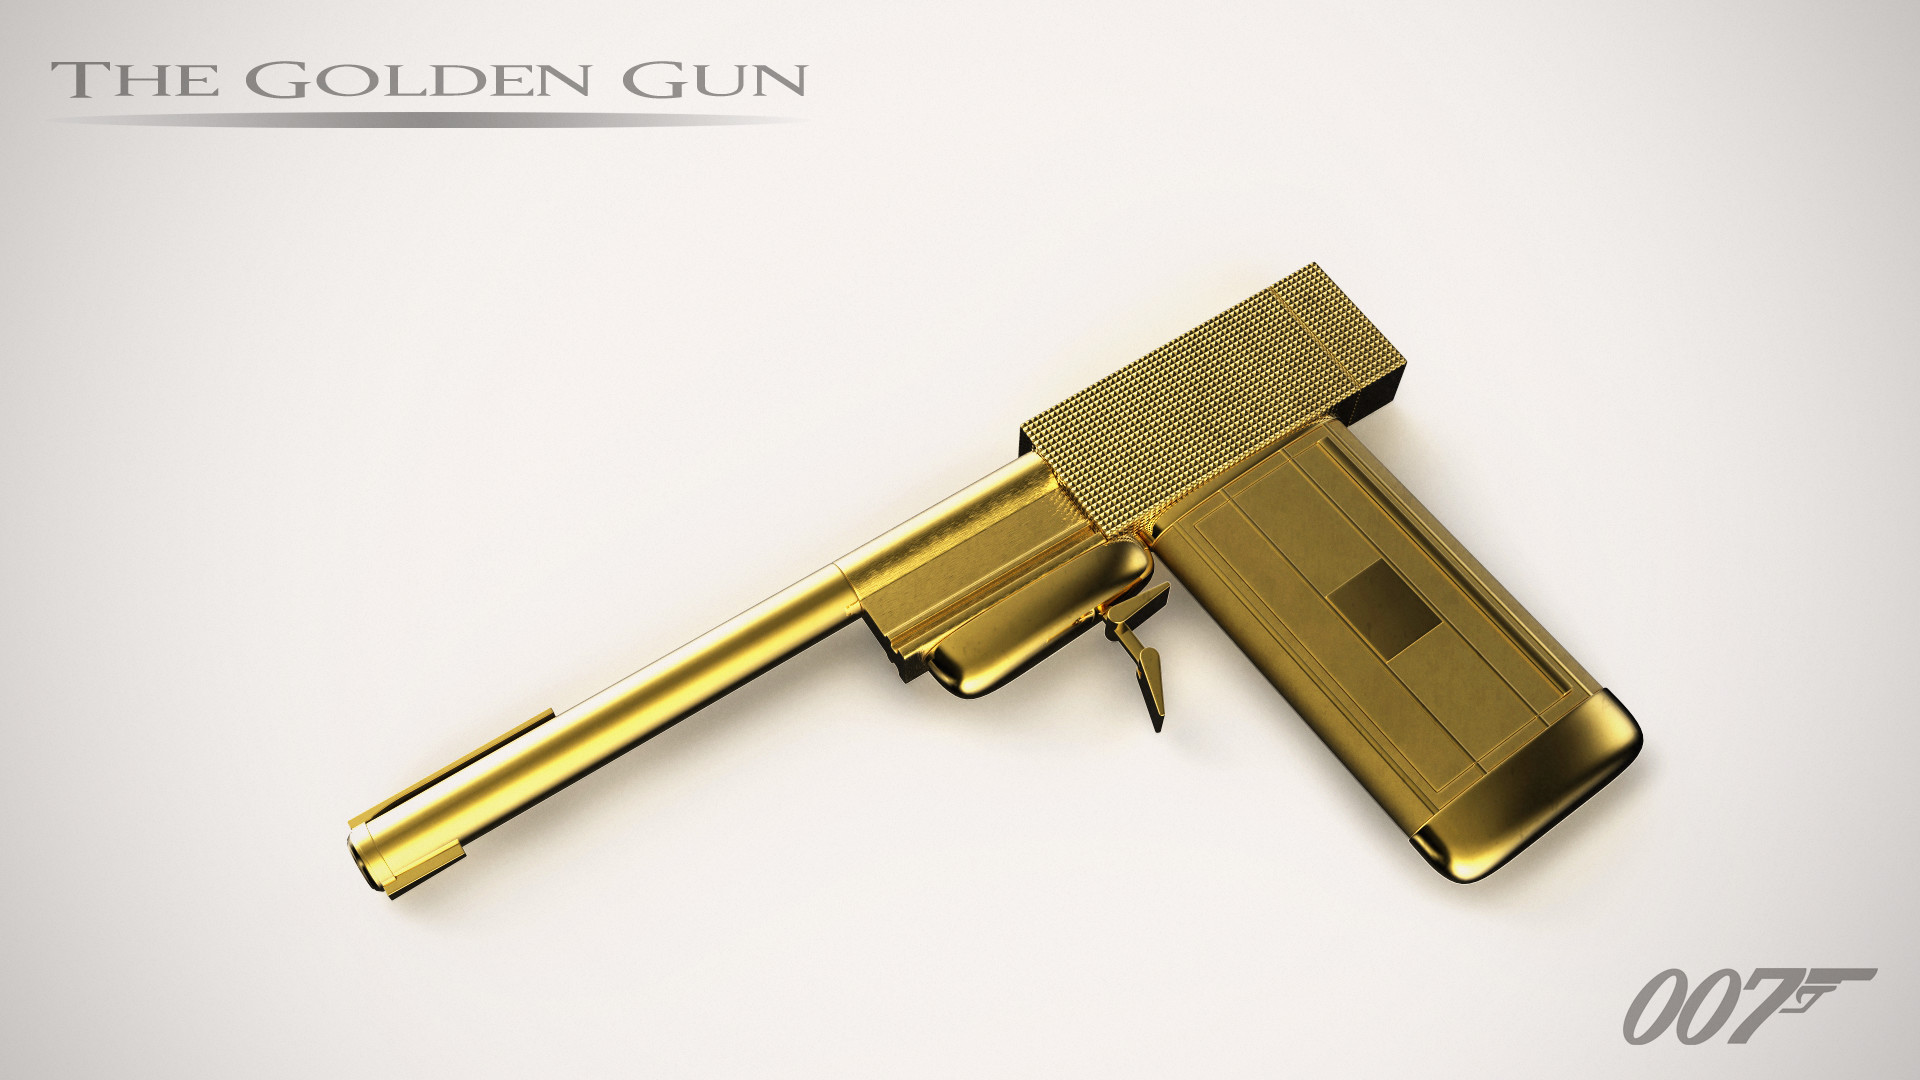 1920x1080 Gold Guns Wallpaper For Android K2Y